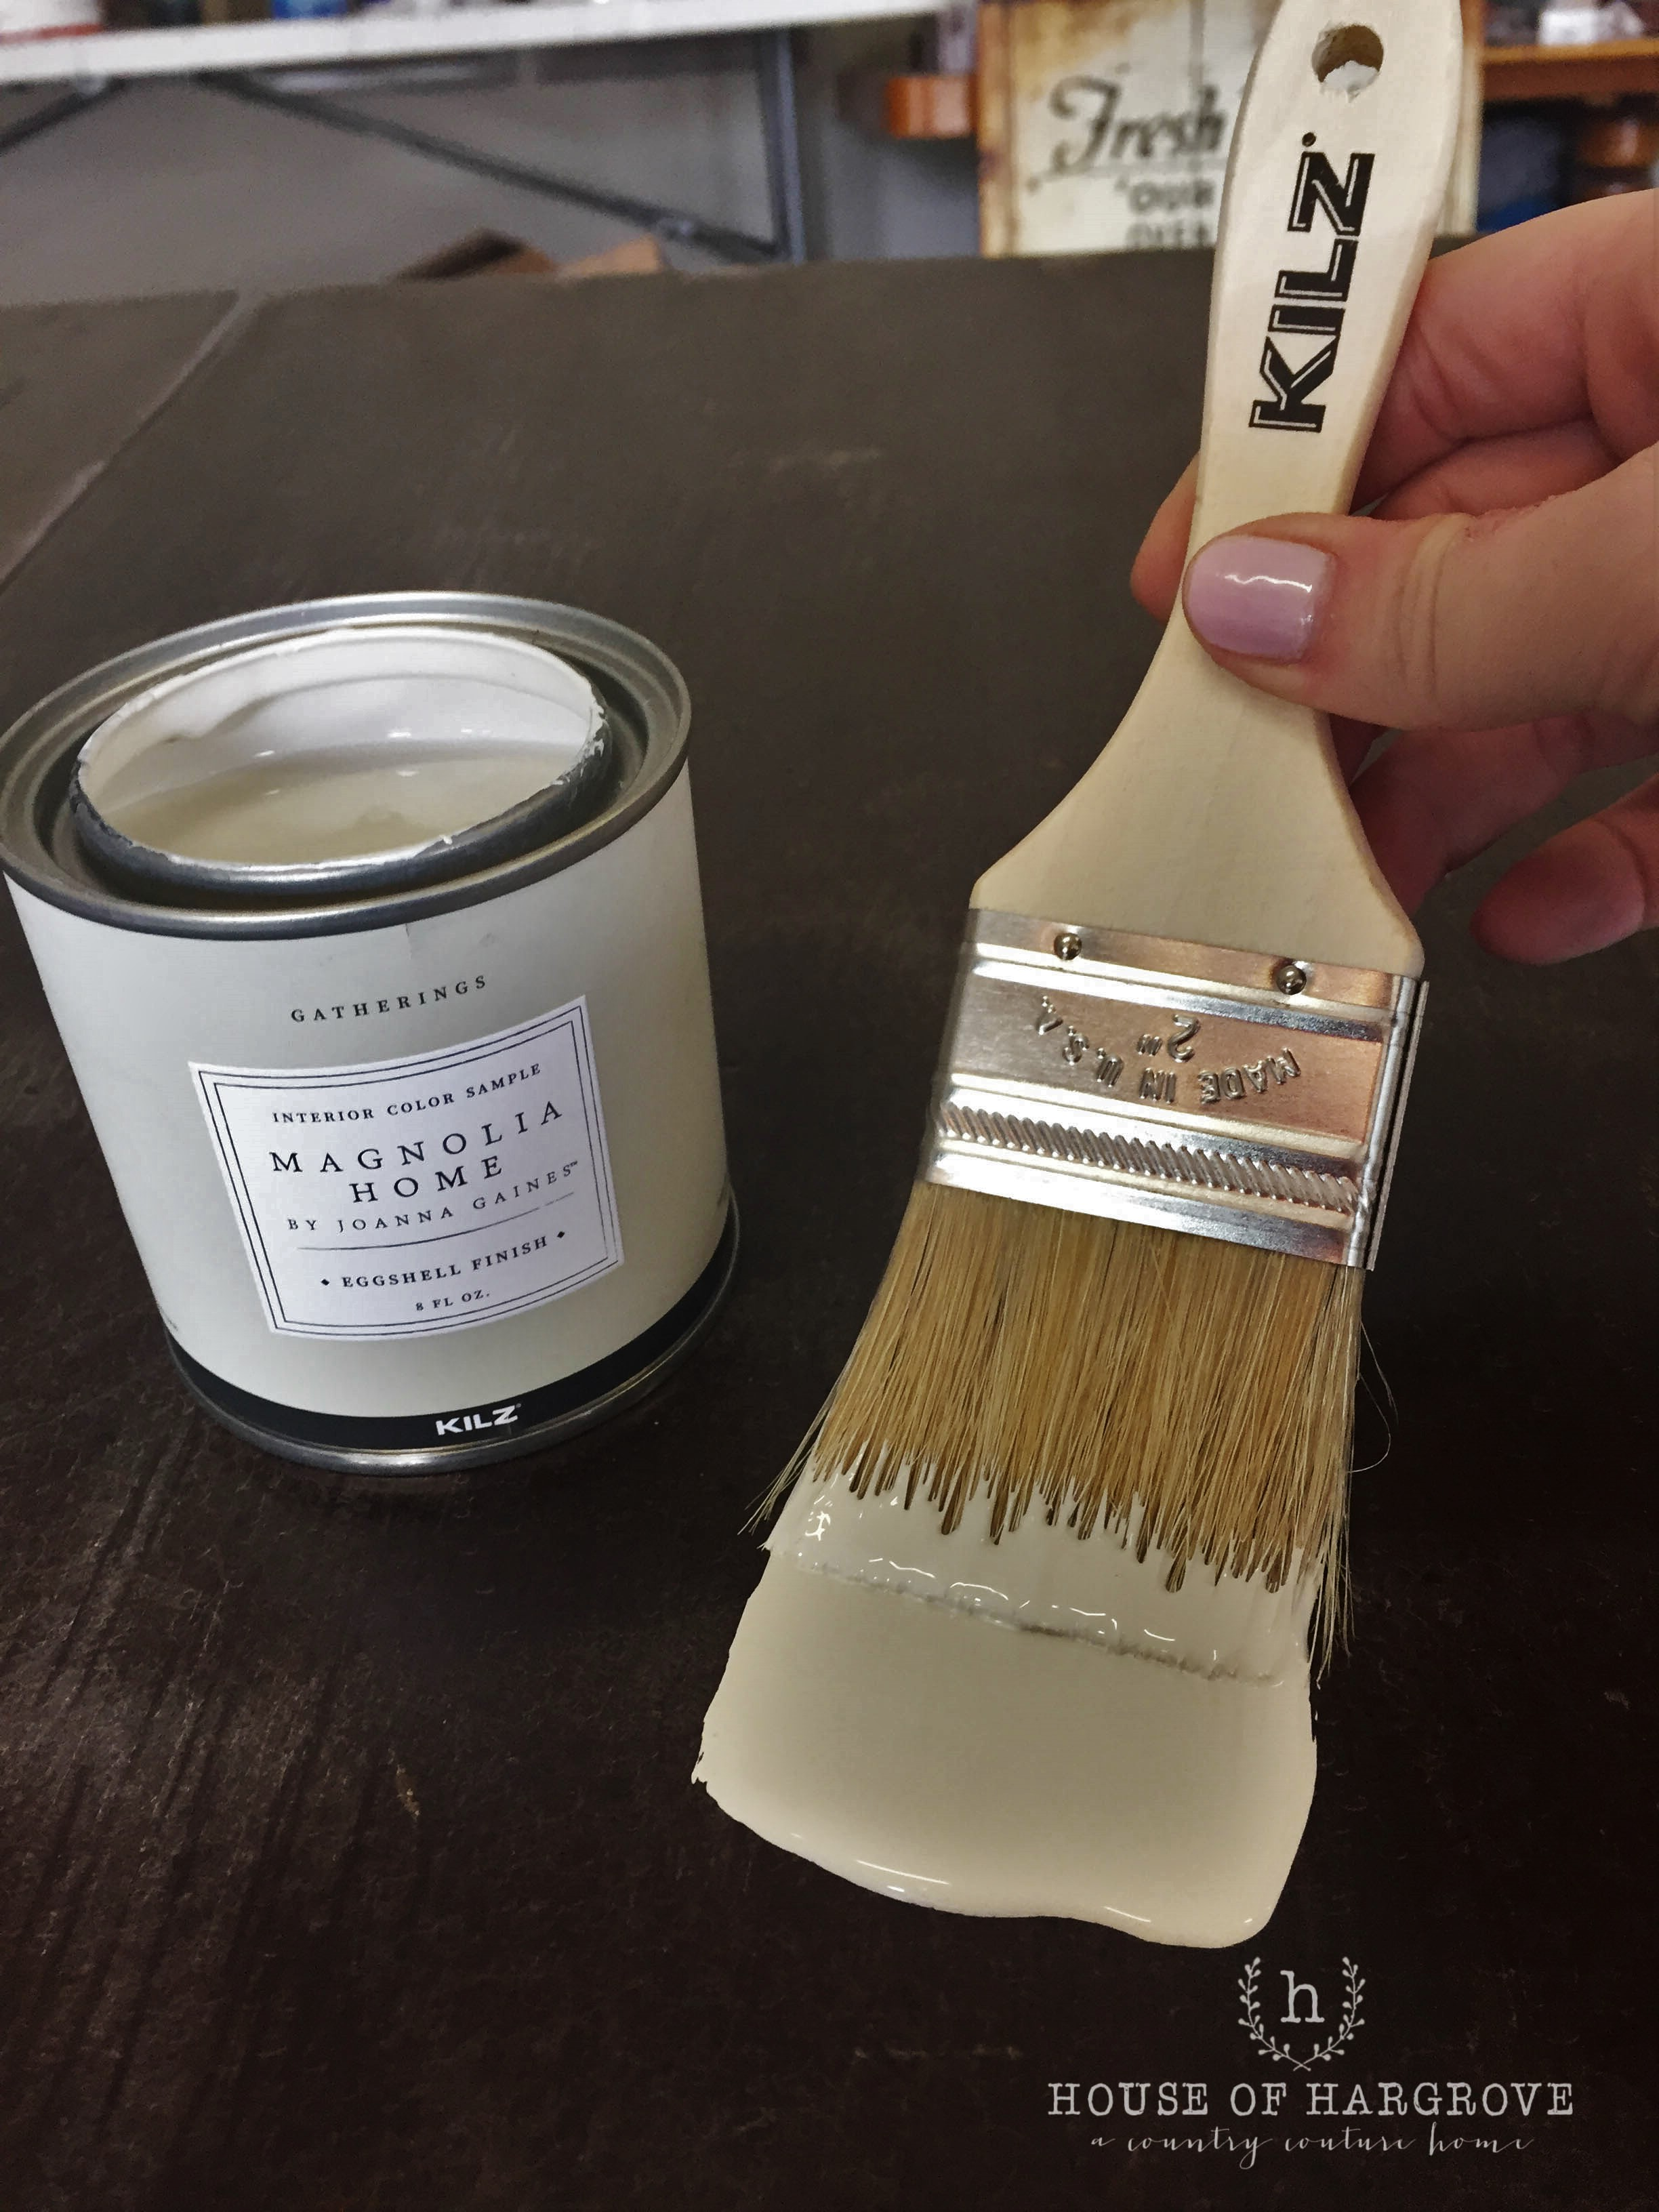 Magnolia Home Paint (17)